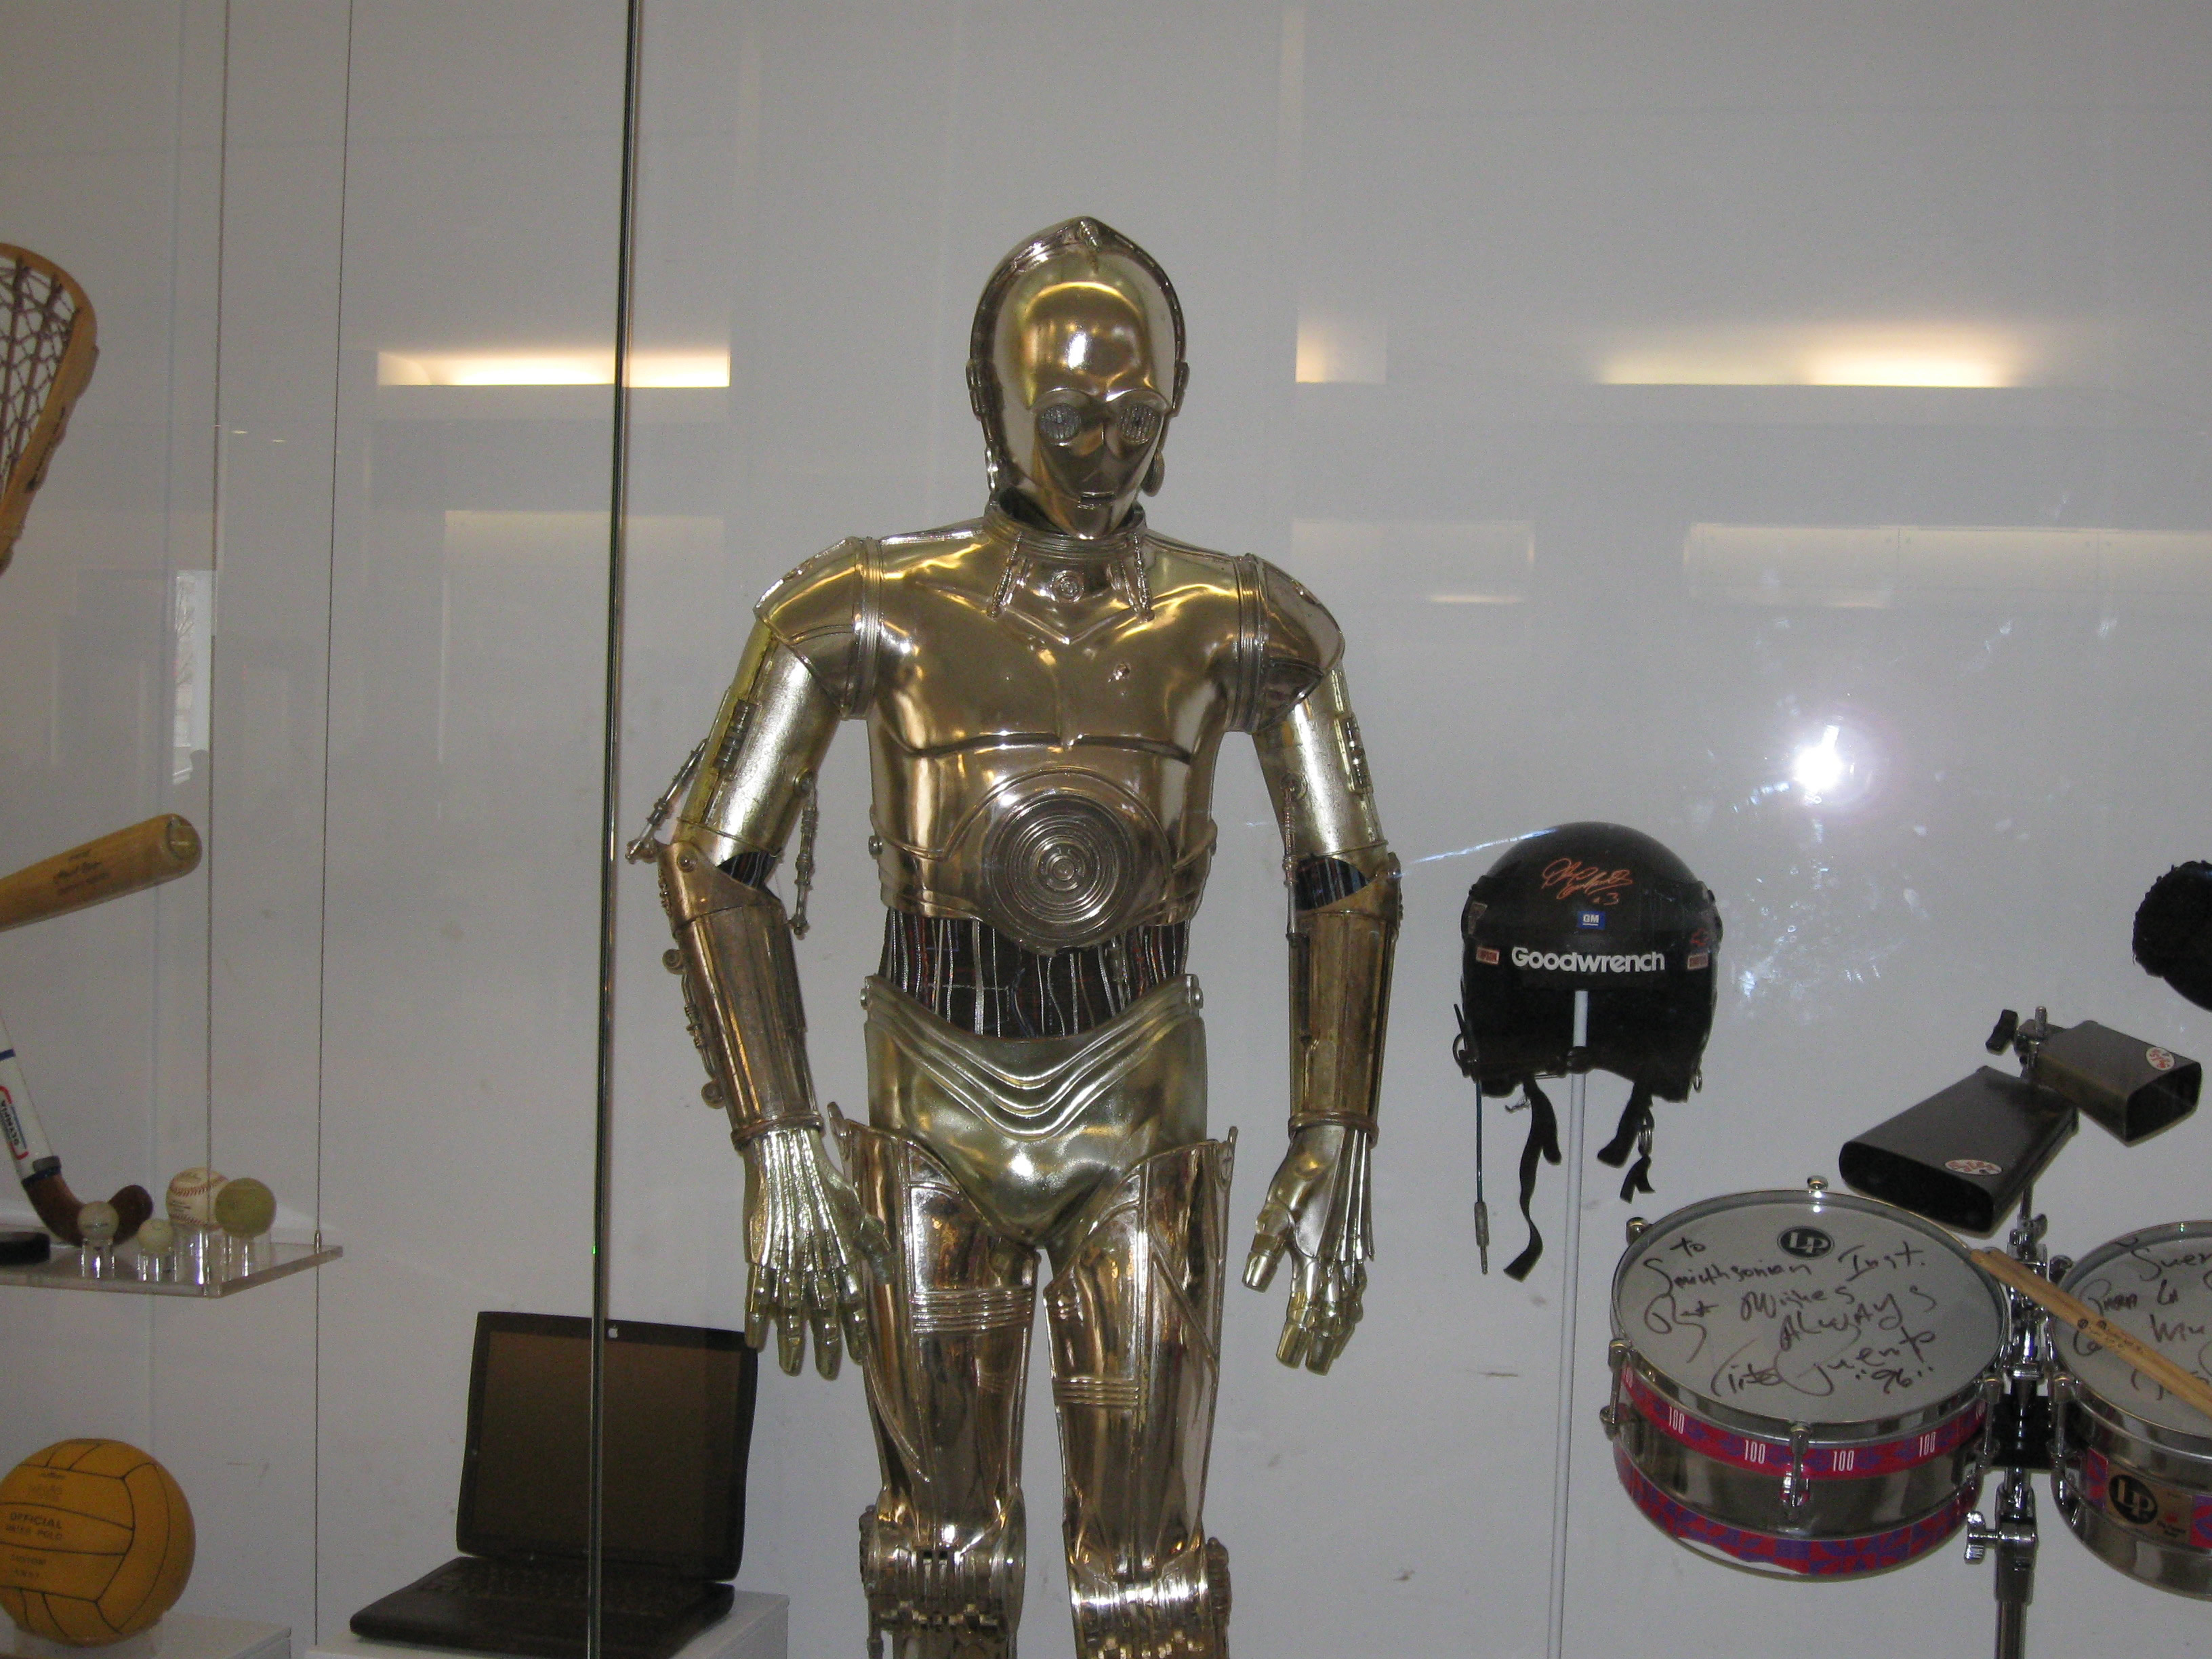 C3PO on exhibit at the Smithsonian Institution